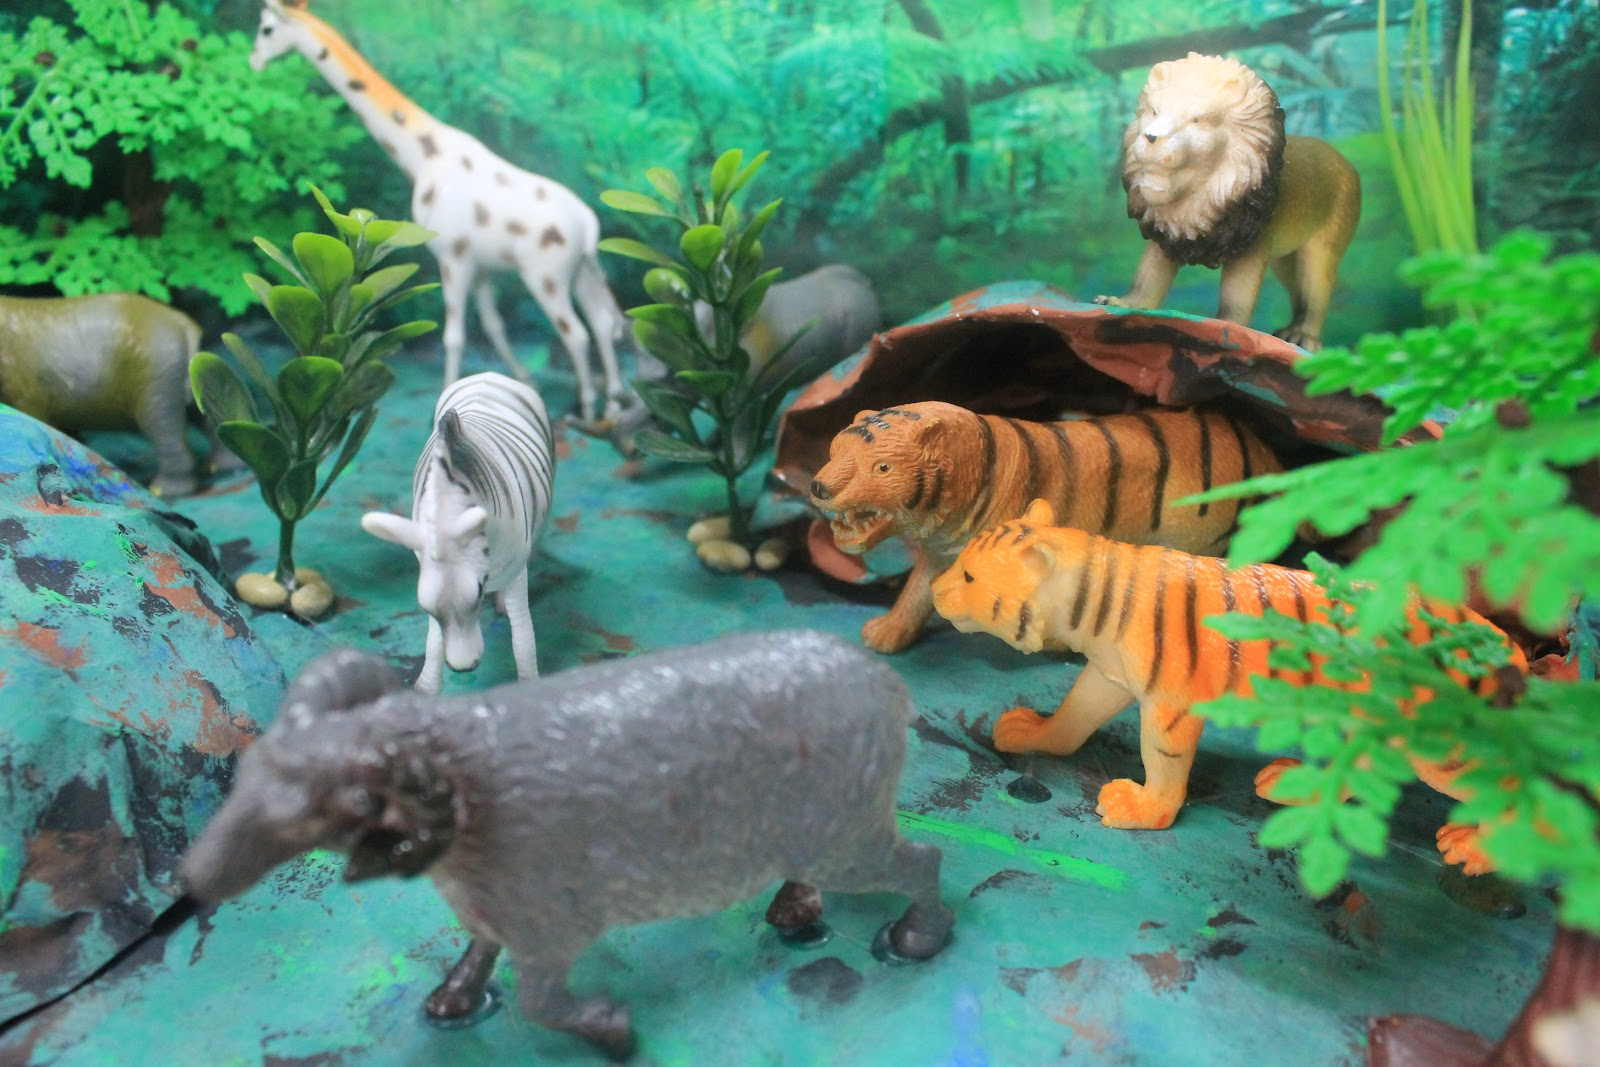 planet earth diorama projects - photo #32